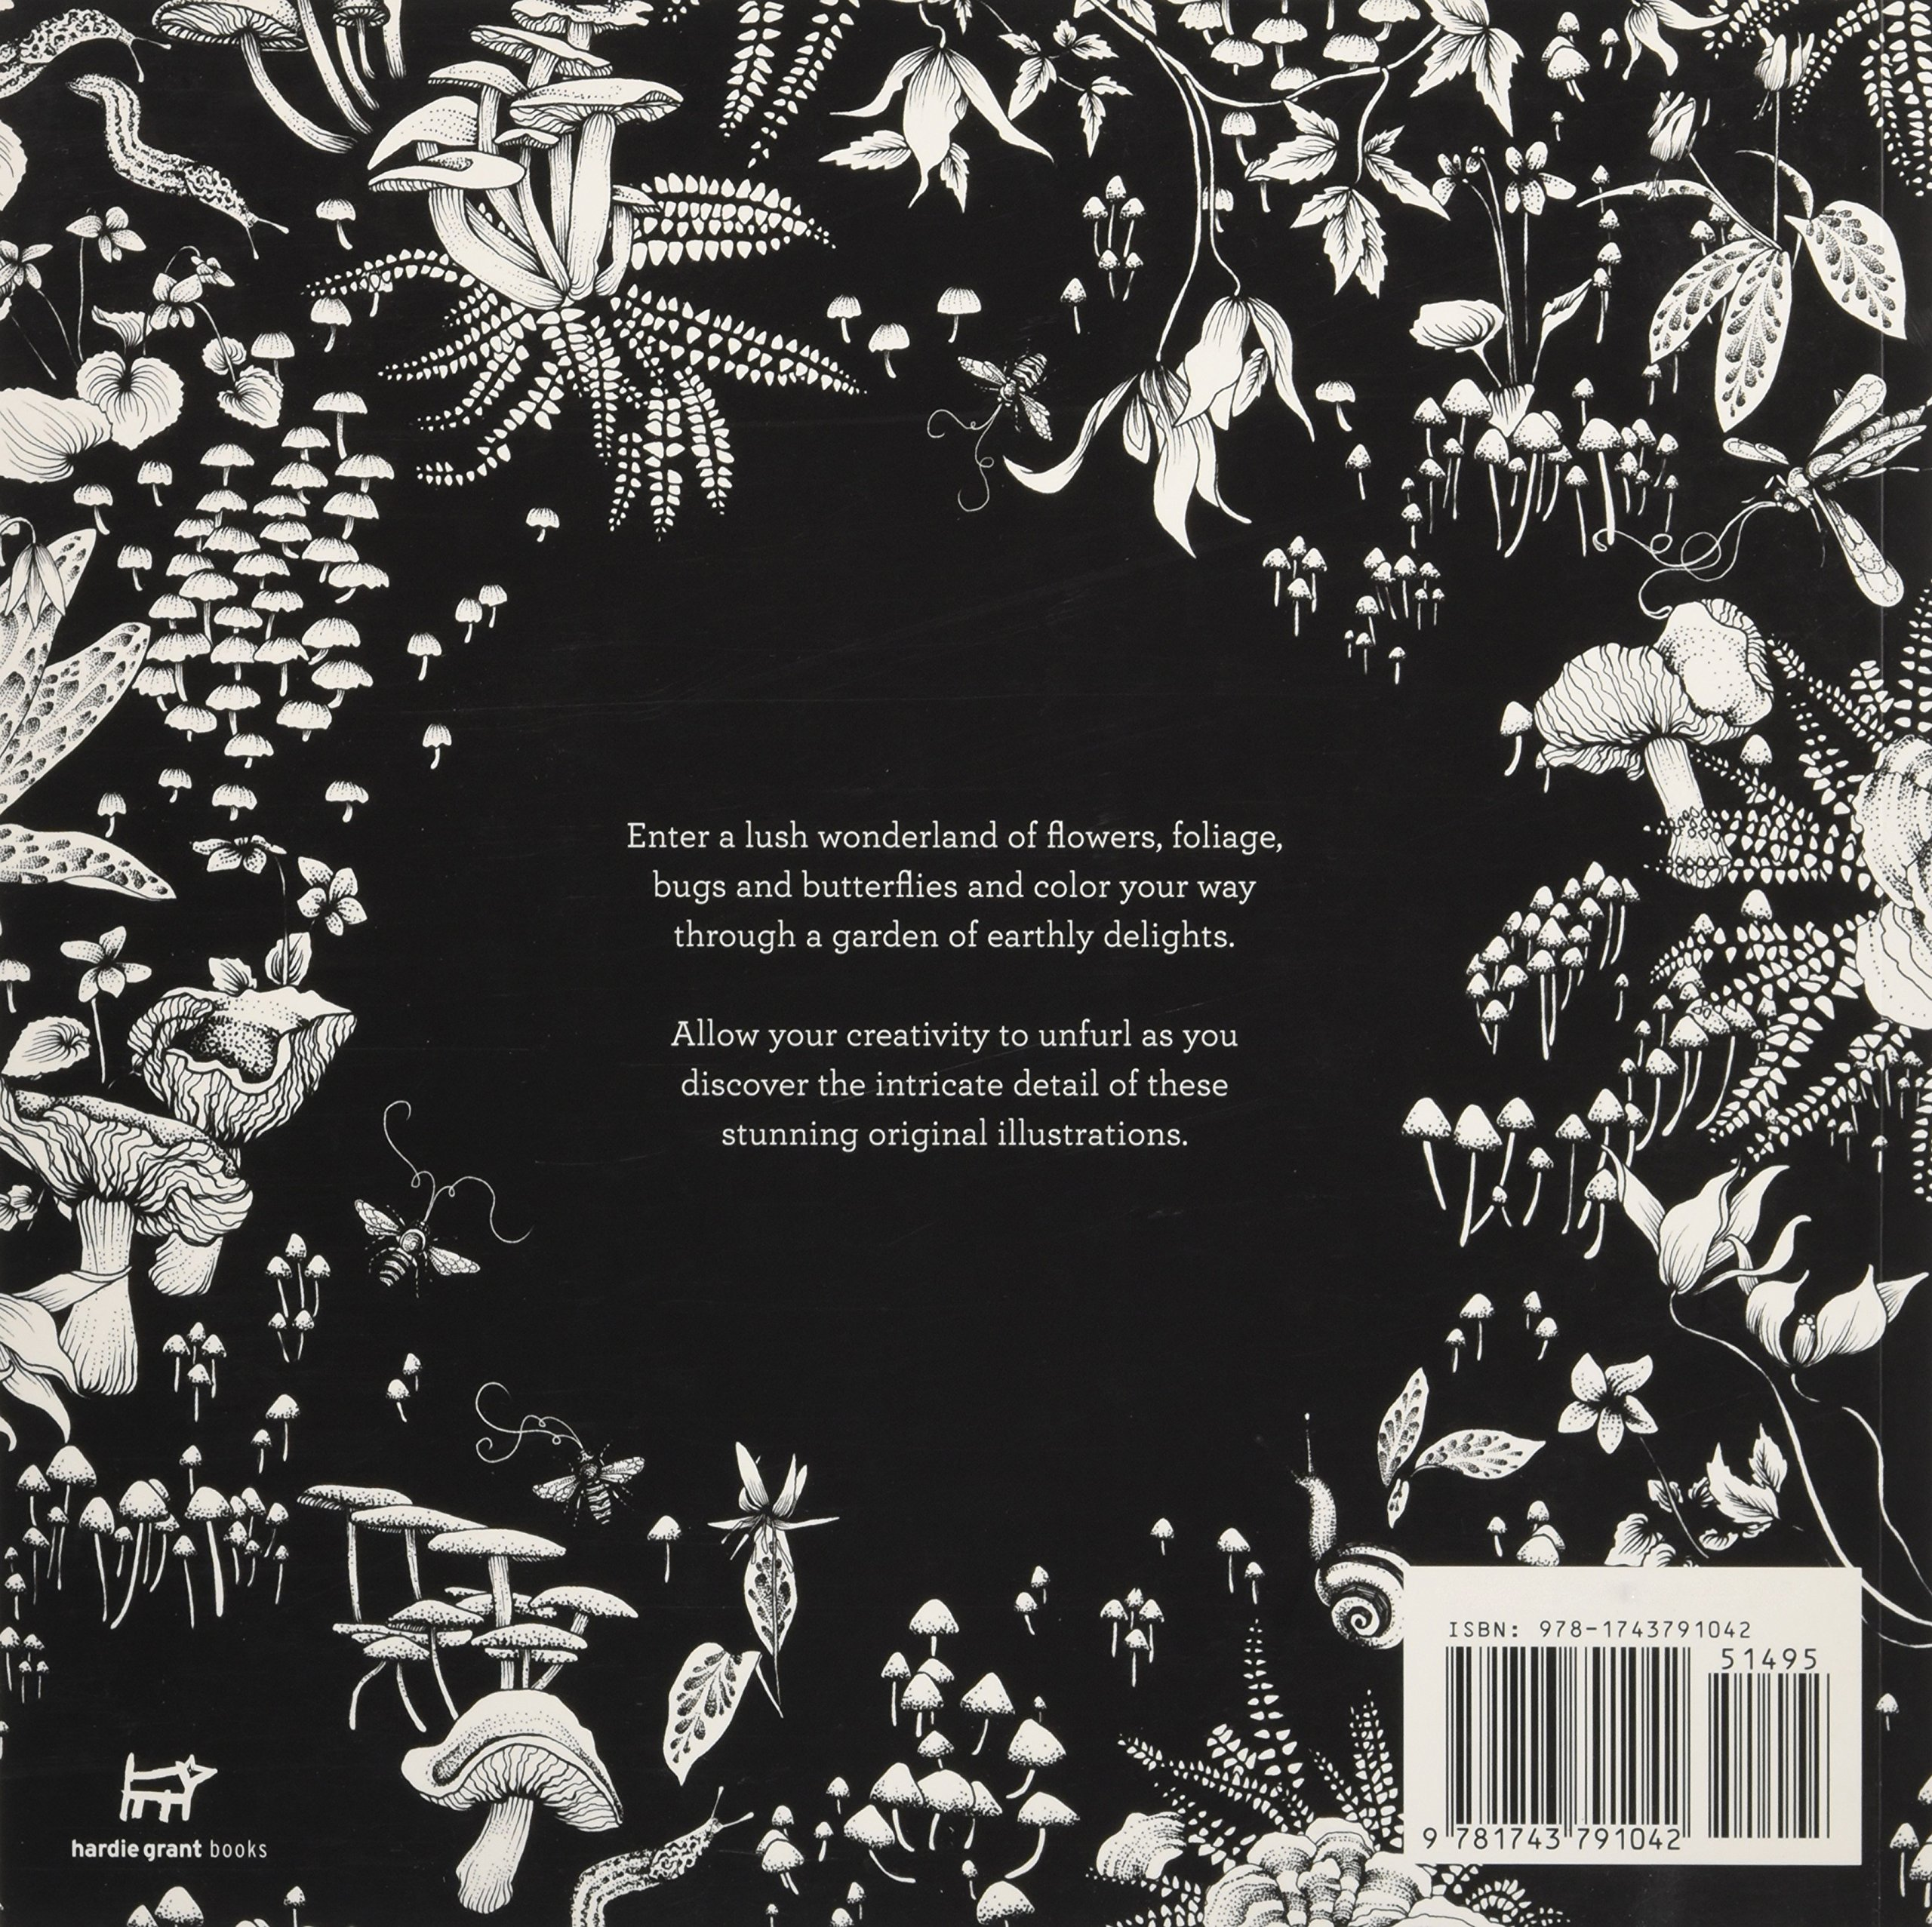 The Garden Of Earthly Delights A Lush Wonderland Coloring For Adults Adriana Picker 9781743791042 Amazon Books